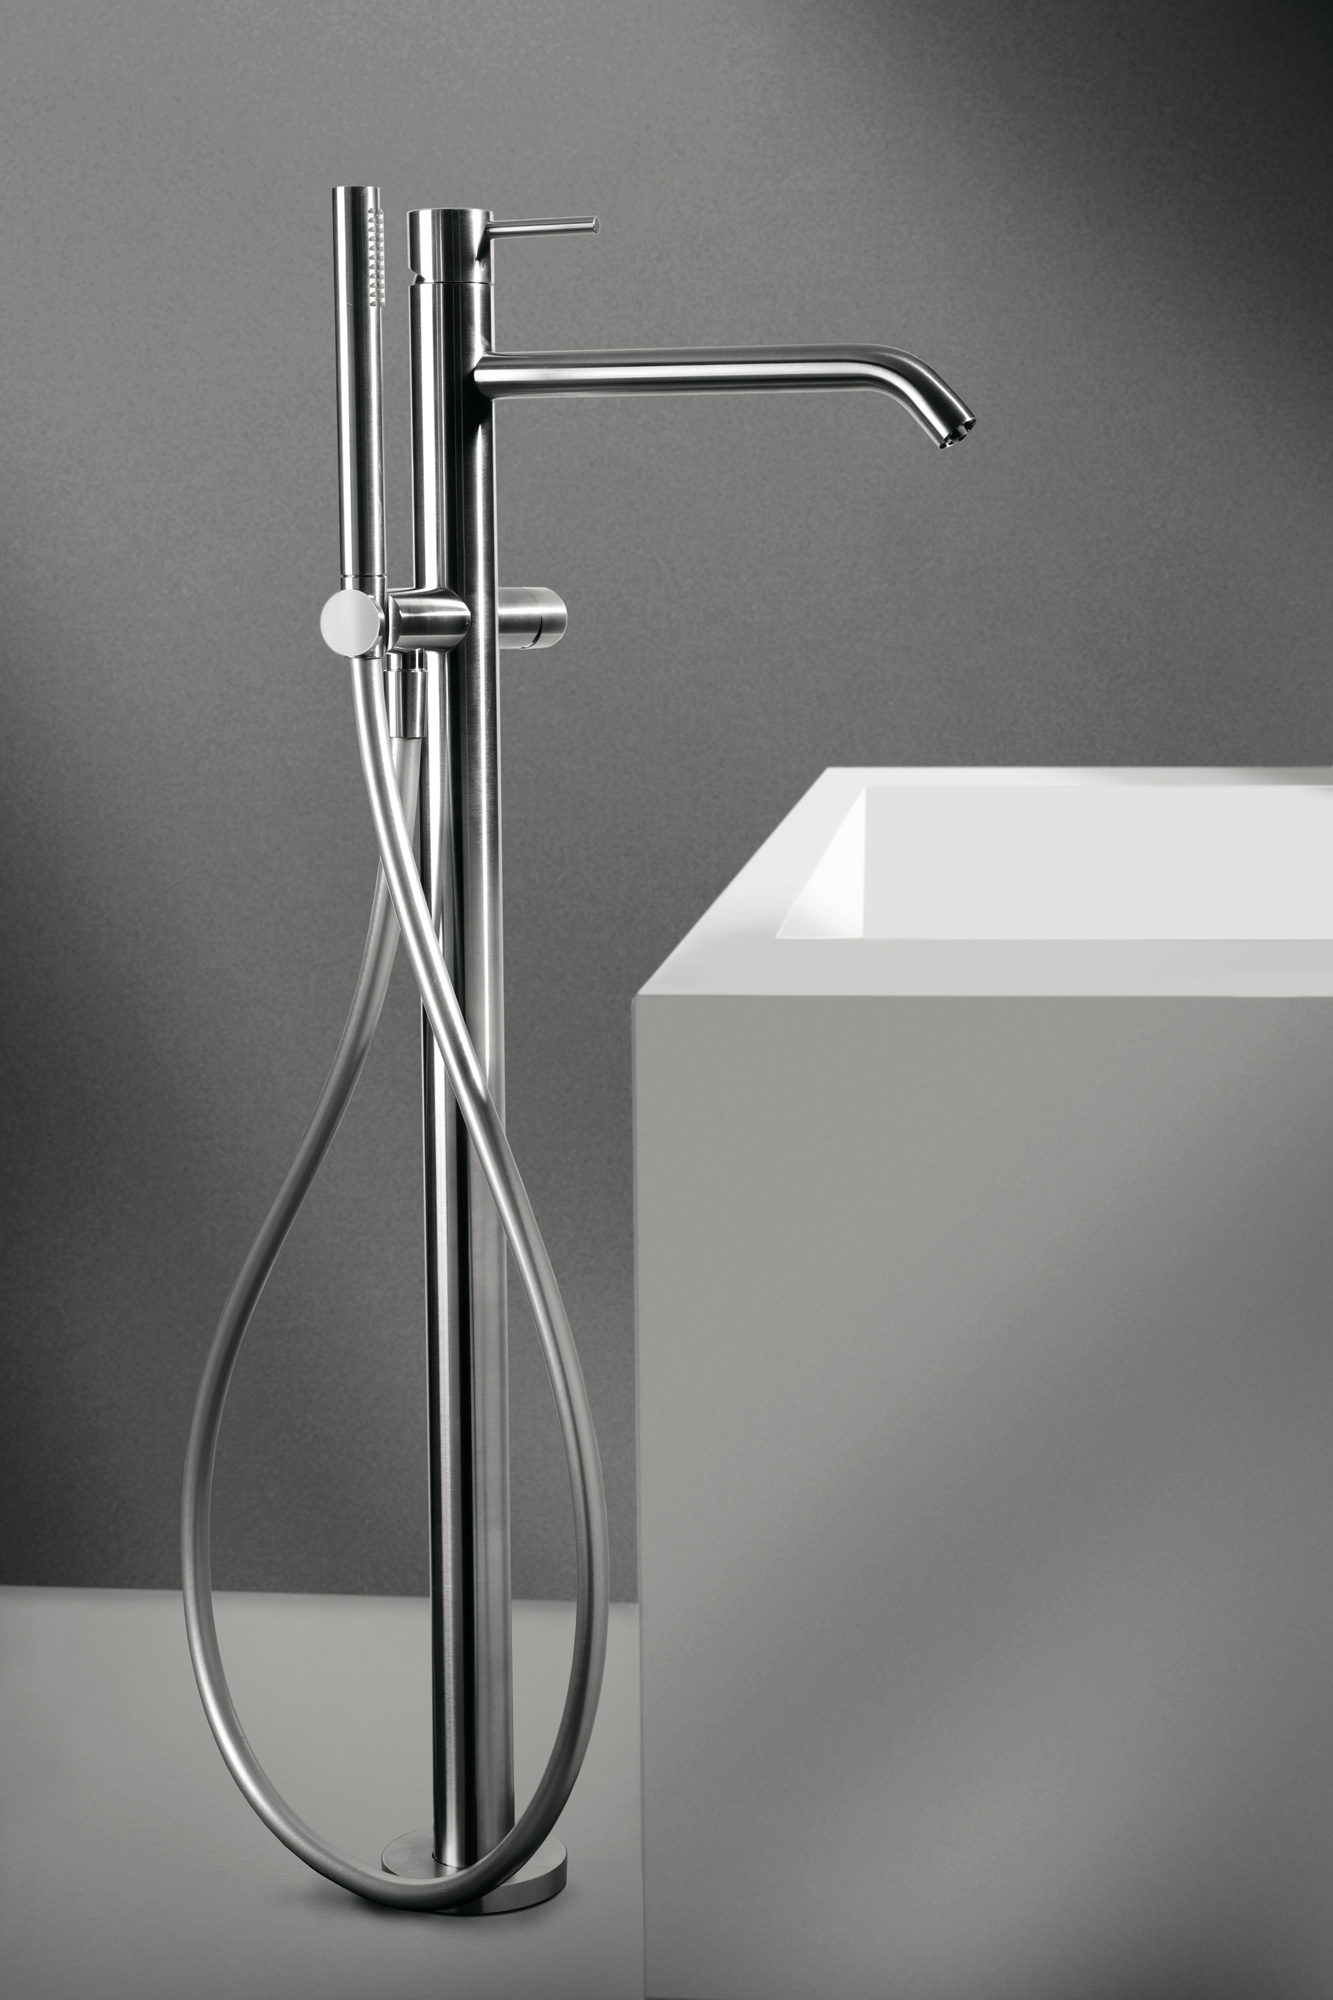 floor wall valve CleoSteel 48 bath, complete with shower. Finish Brushed Stainless Steel